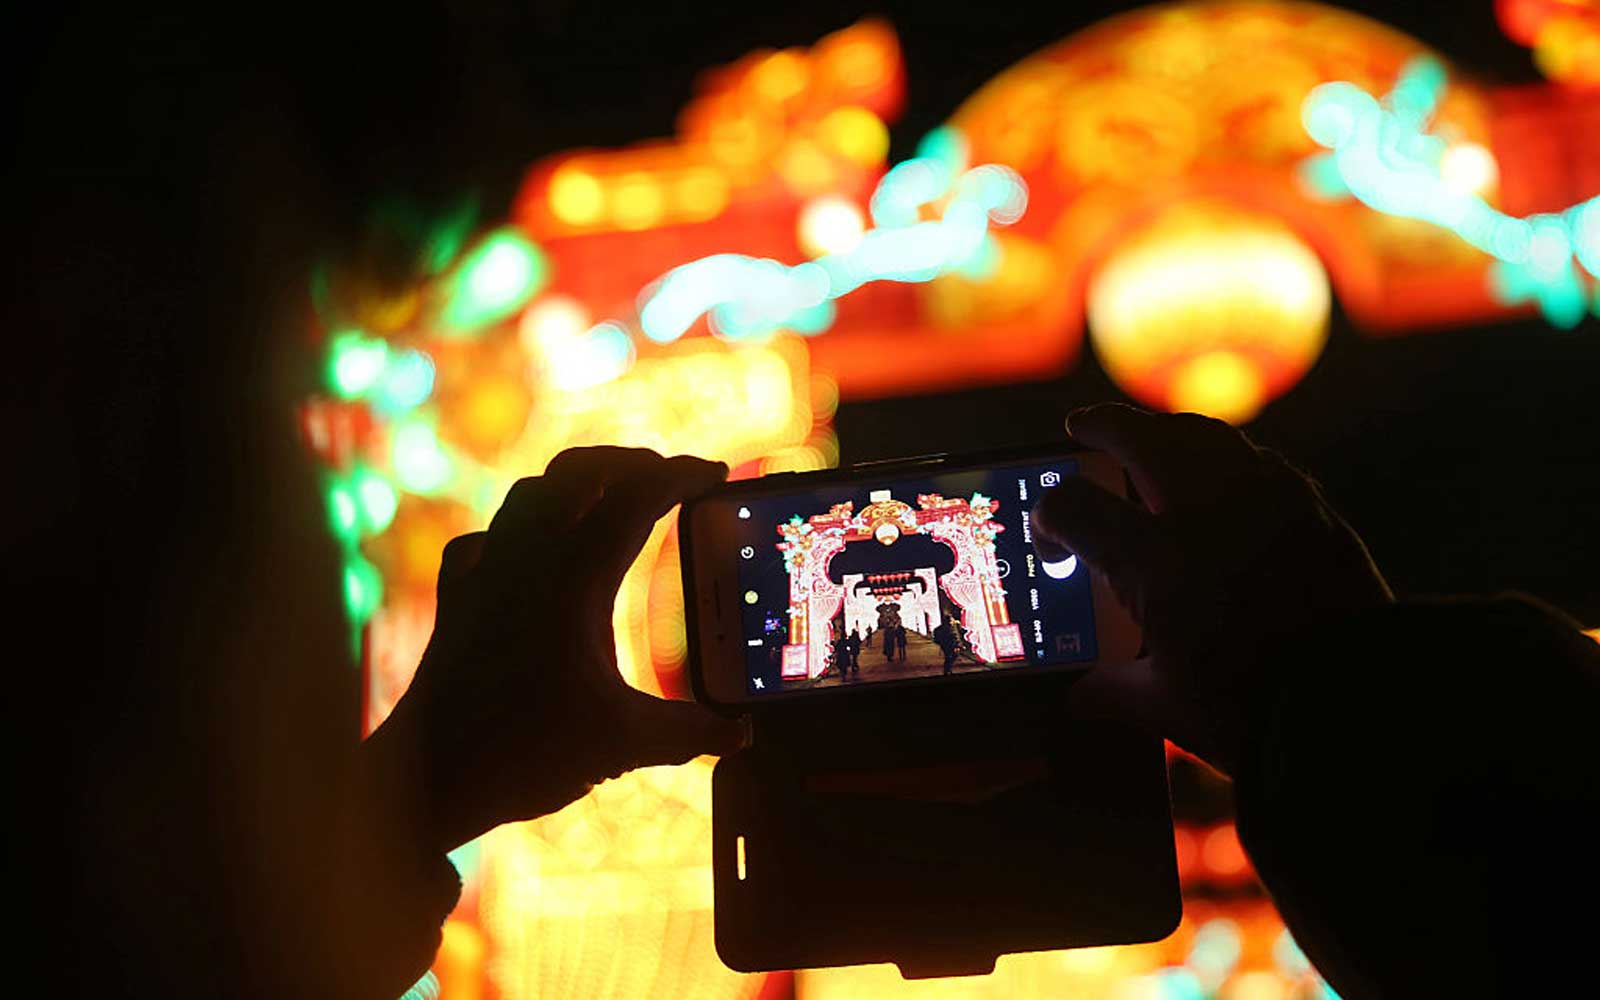 A woman takes a picture with her smartphone of a light corridor during a photocall to promote the Magical Lantern Festival at Chiswick House Gardens in west London on January 18, 2017. The Silk Road was chosen as the festival theme for 2017 due to its hi